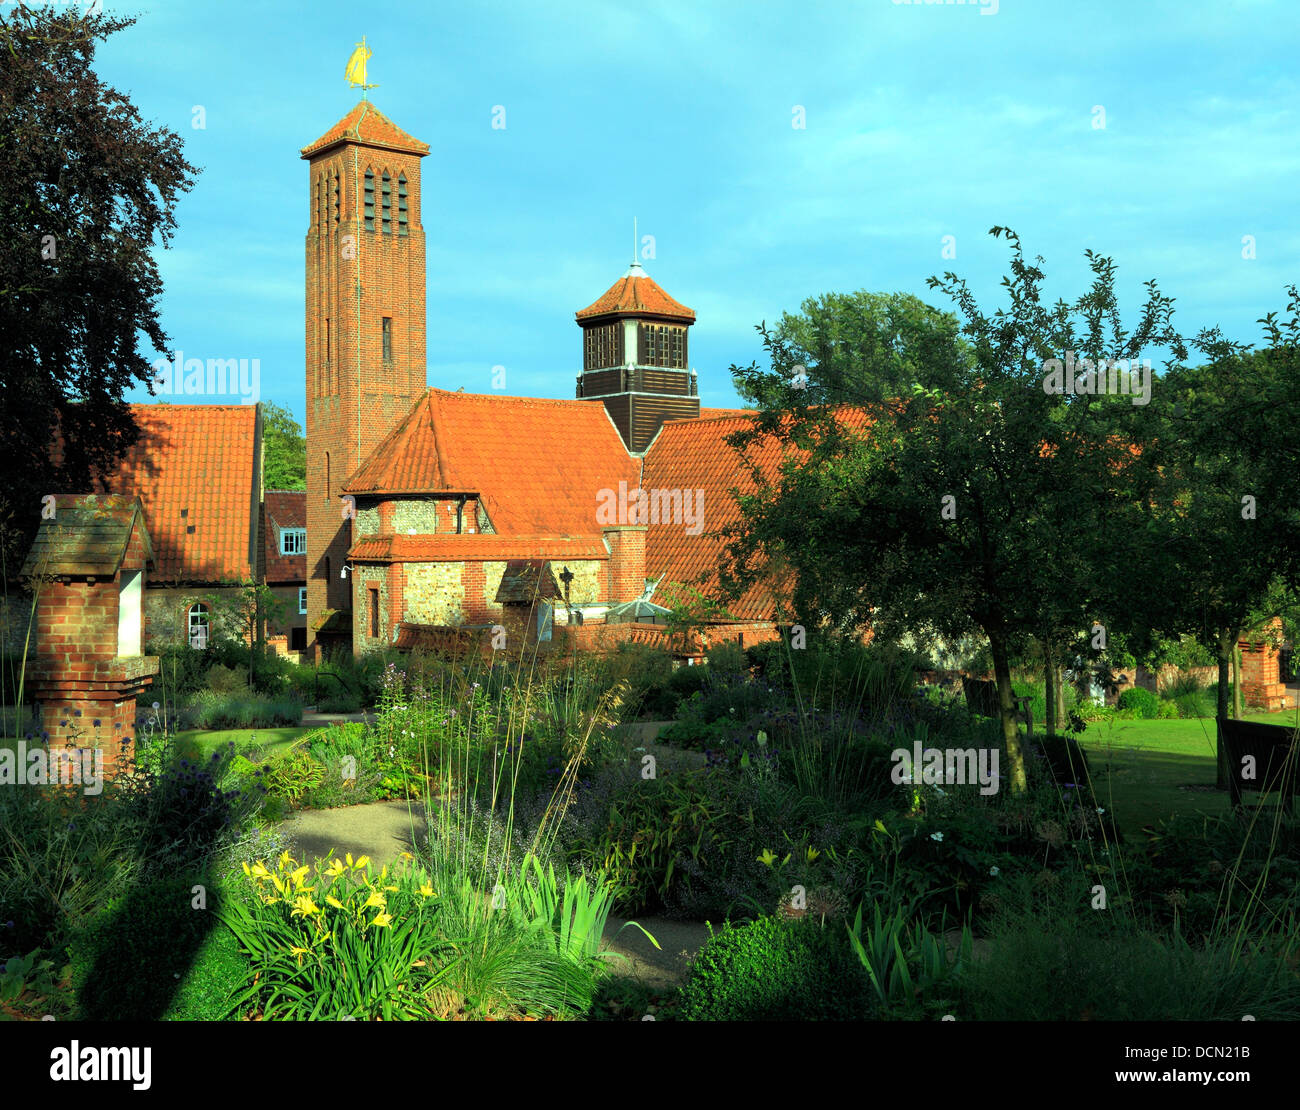 Shrine of Our Lady of Walsingham, Anglican church, 20th century, Norfolk, England, UK, modern English churches - Stock Image